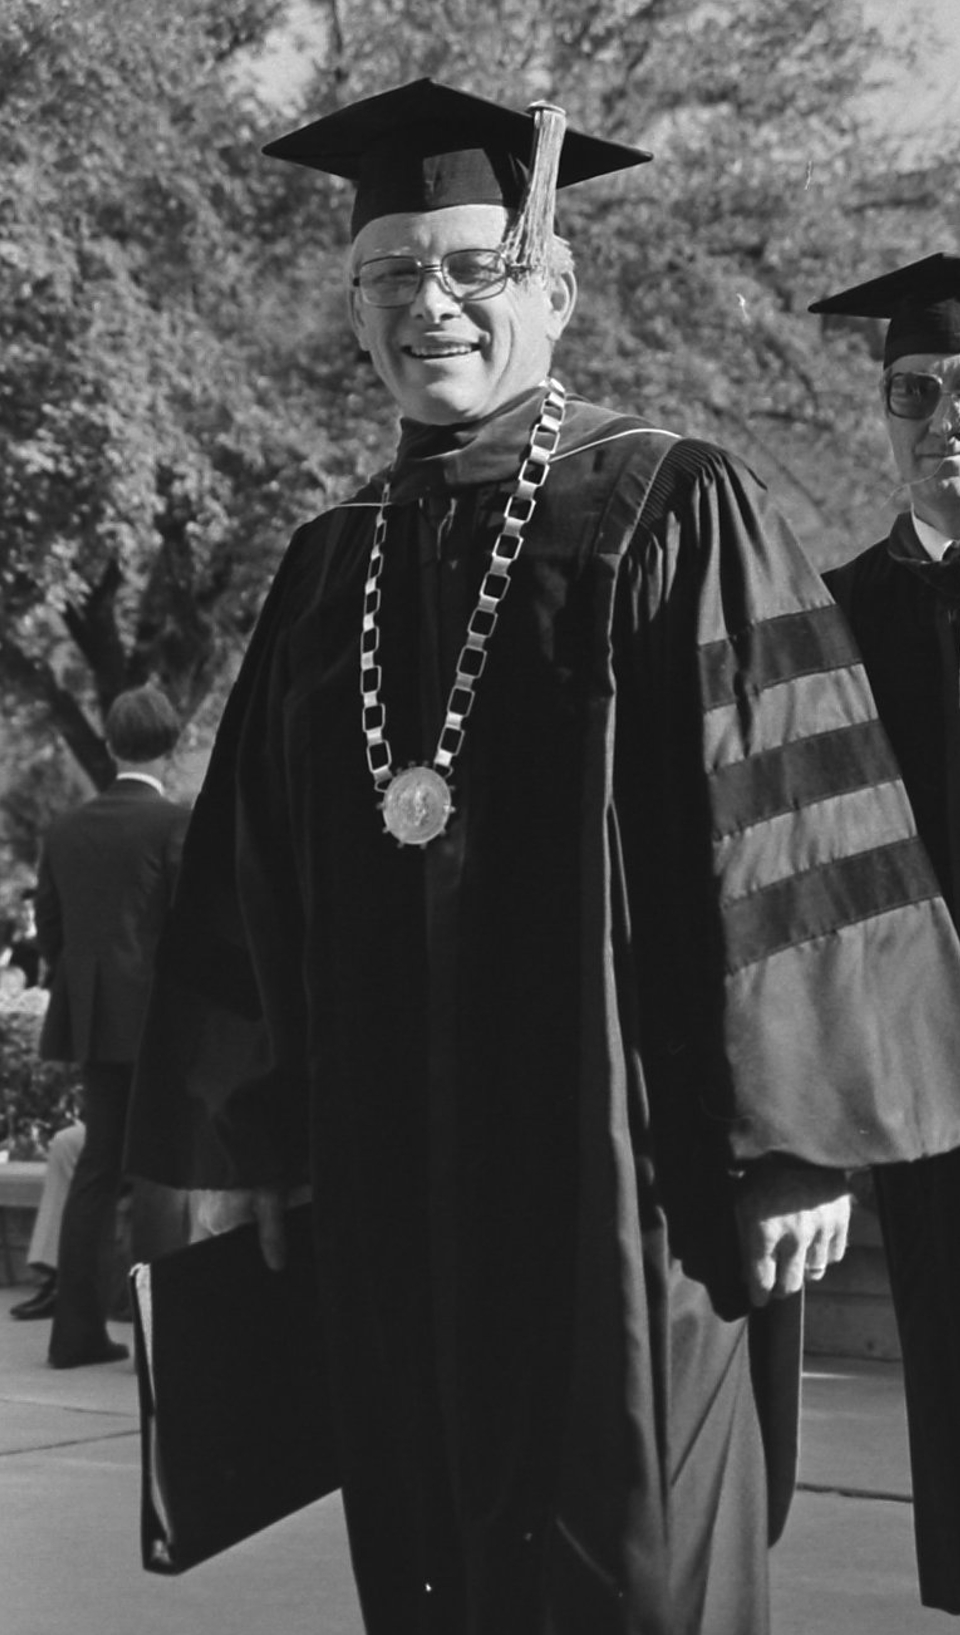 Del Shankel in the 1981 Convocation procession